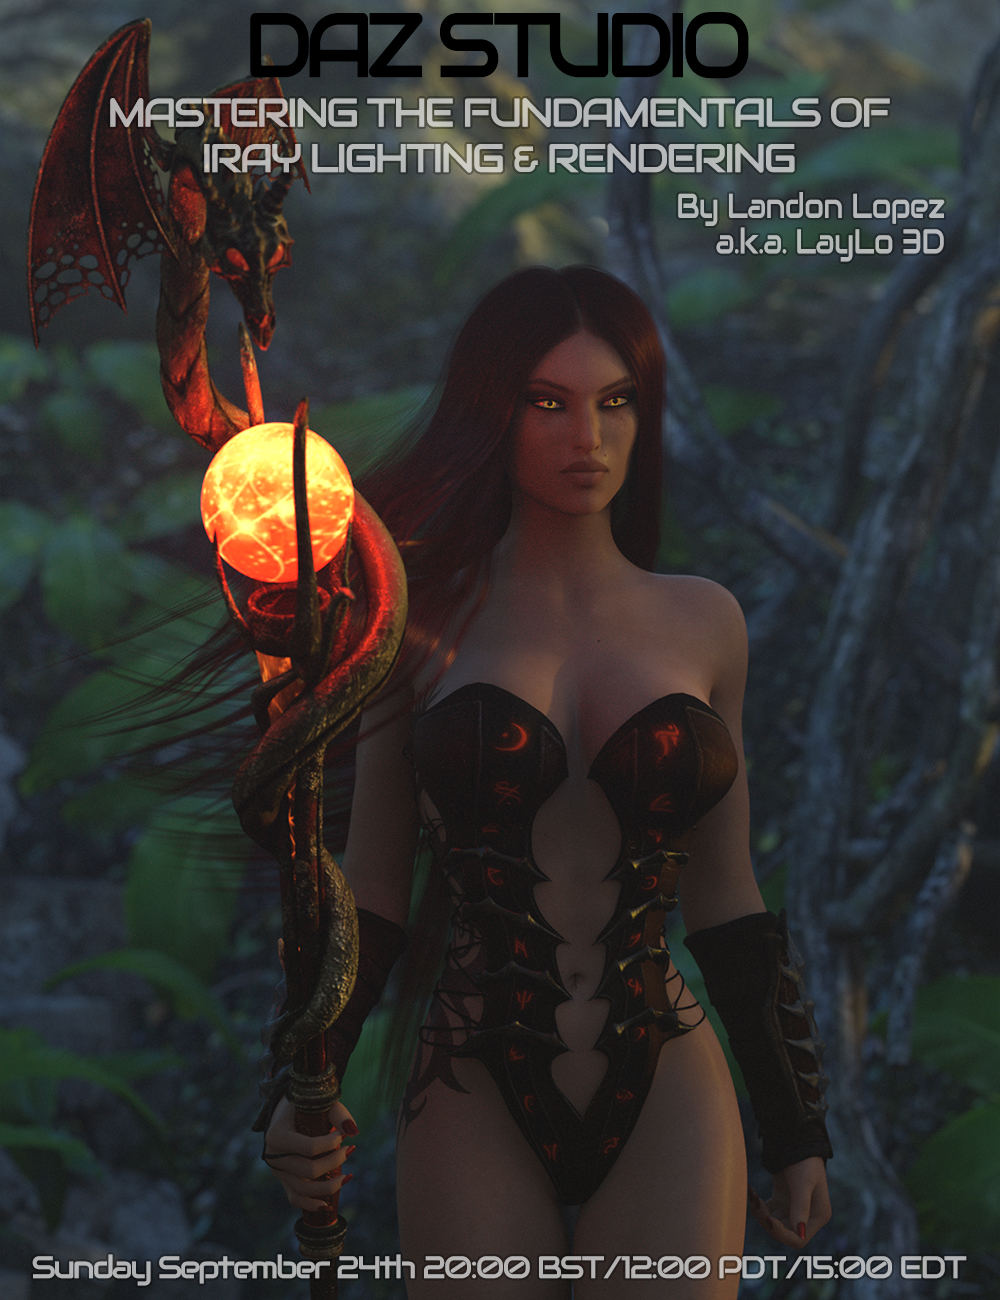 Daz Studio: Mastering the Fundamentals of Iray Lighting & Rendering